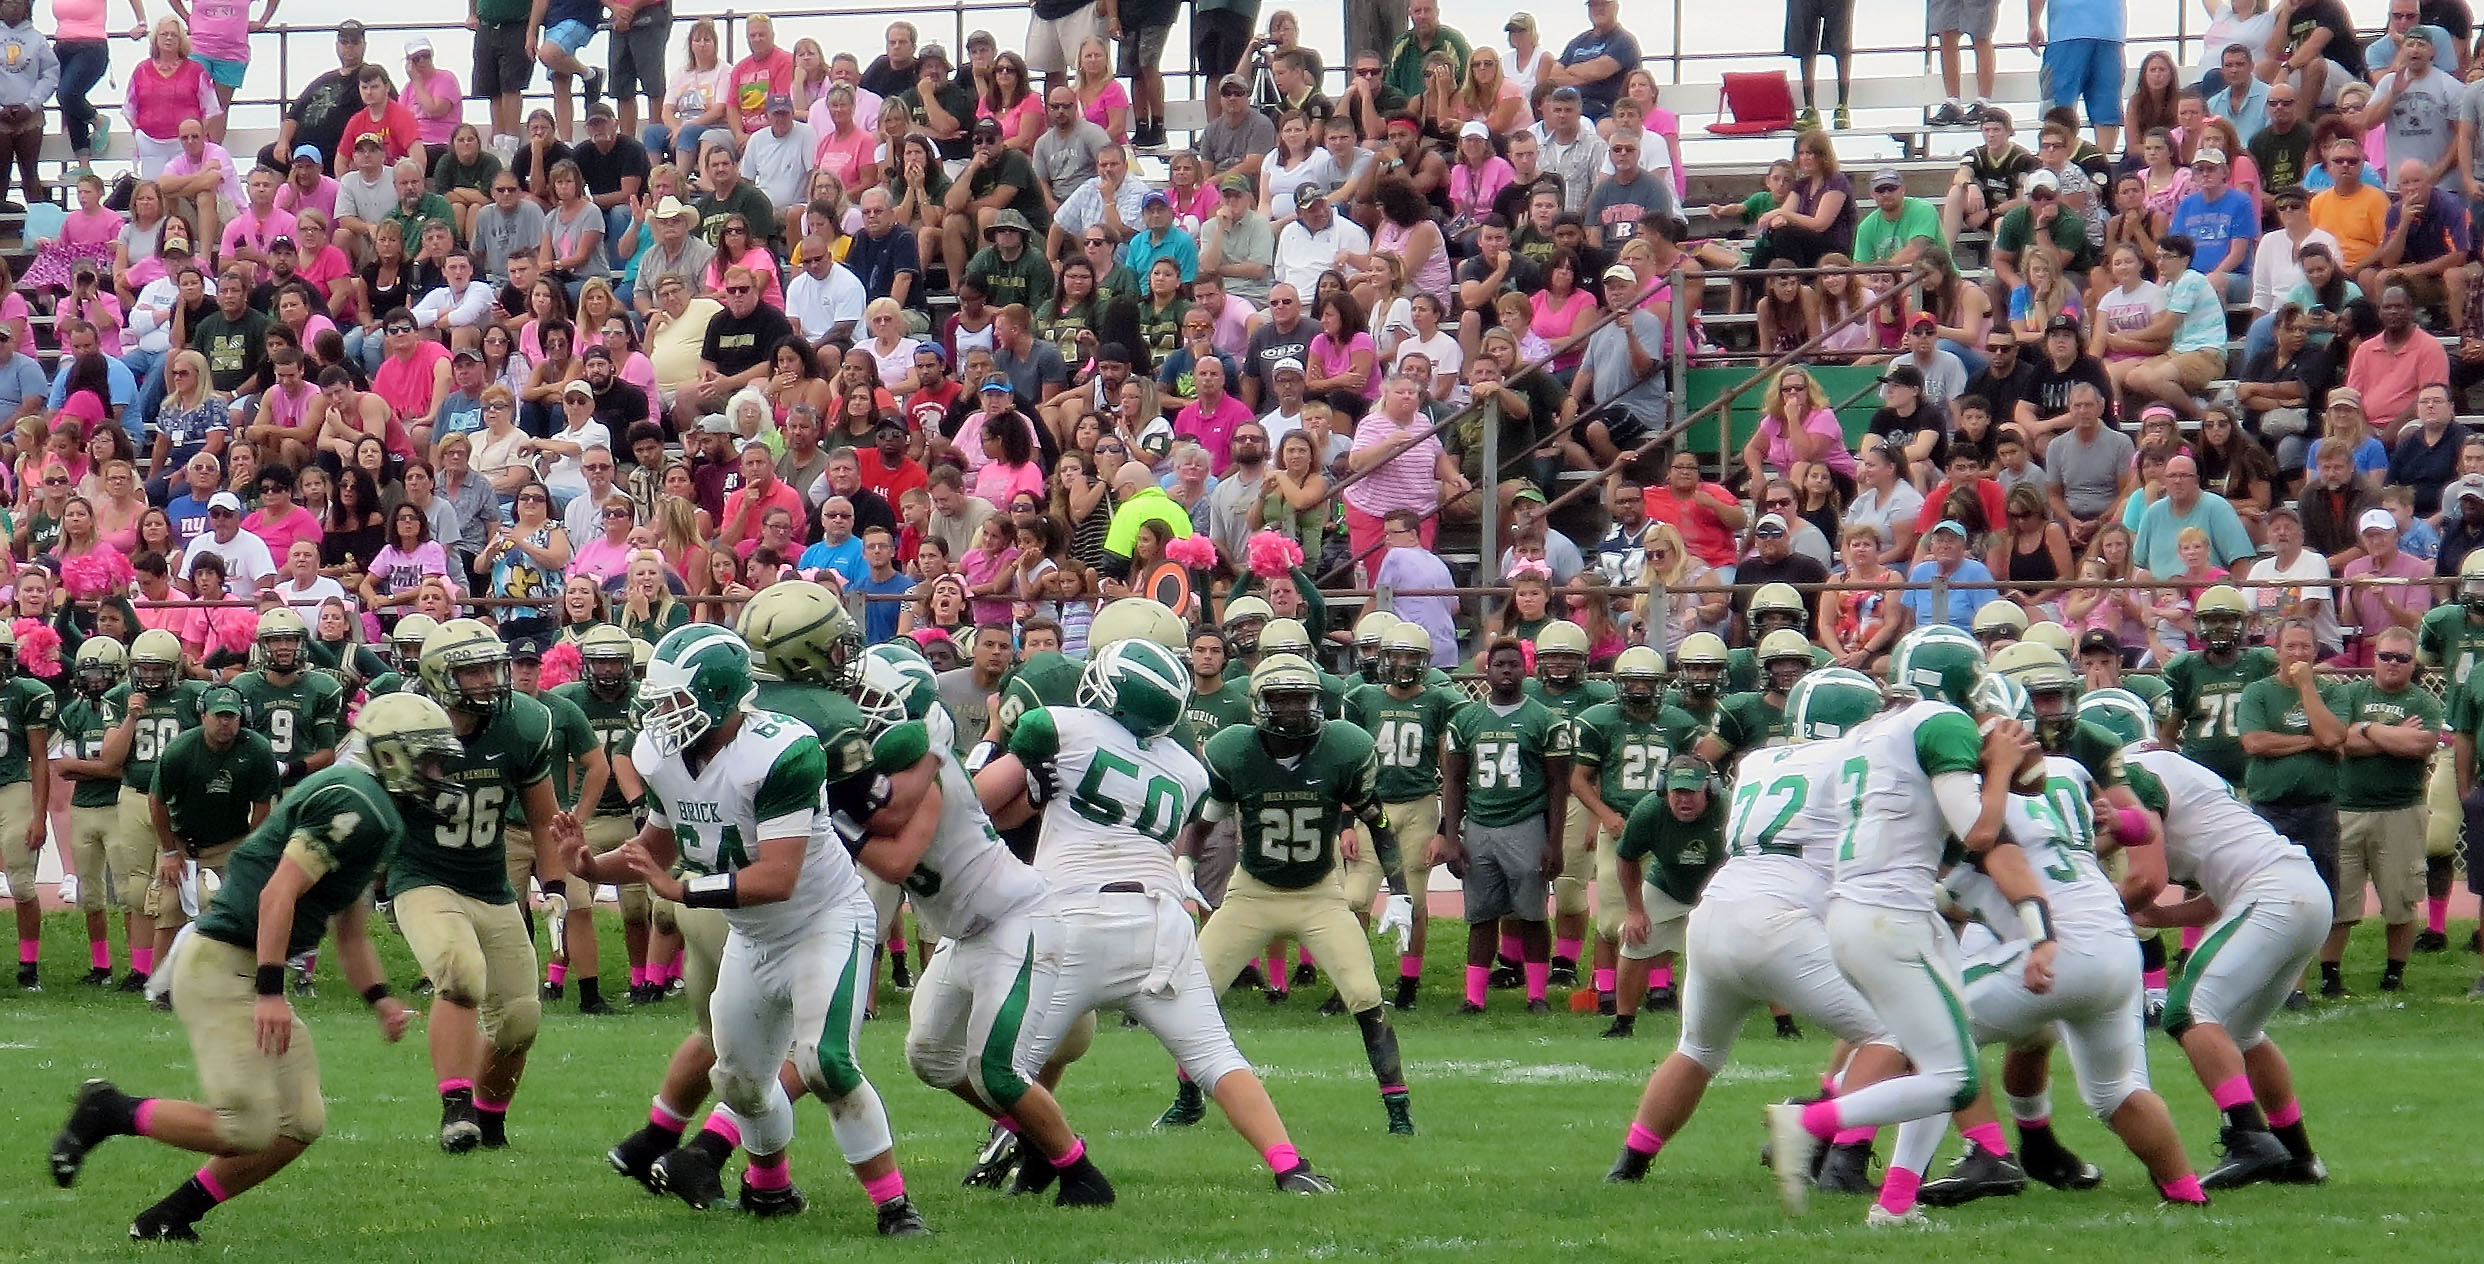 The Mustangs and Dragons faced off in an opening-day rivalry game, Sept. 12, 2015. (Shorebeat File Photo)